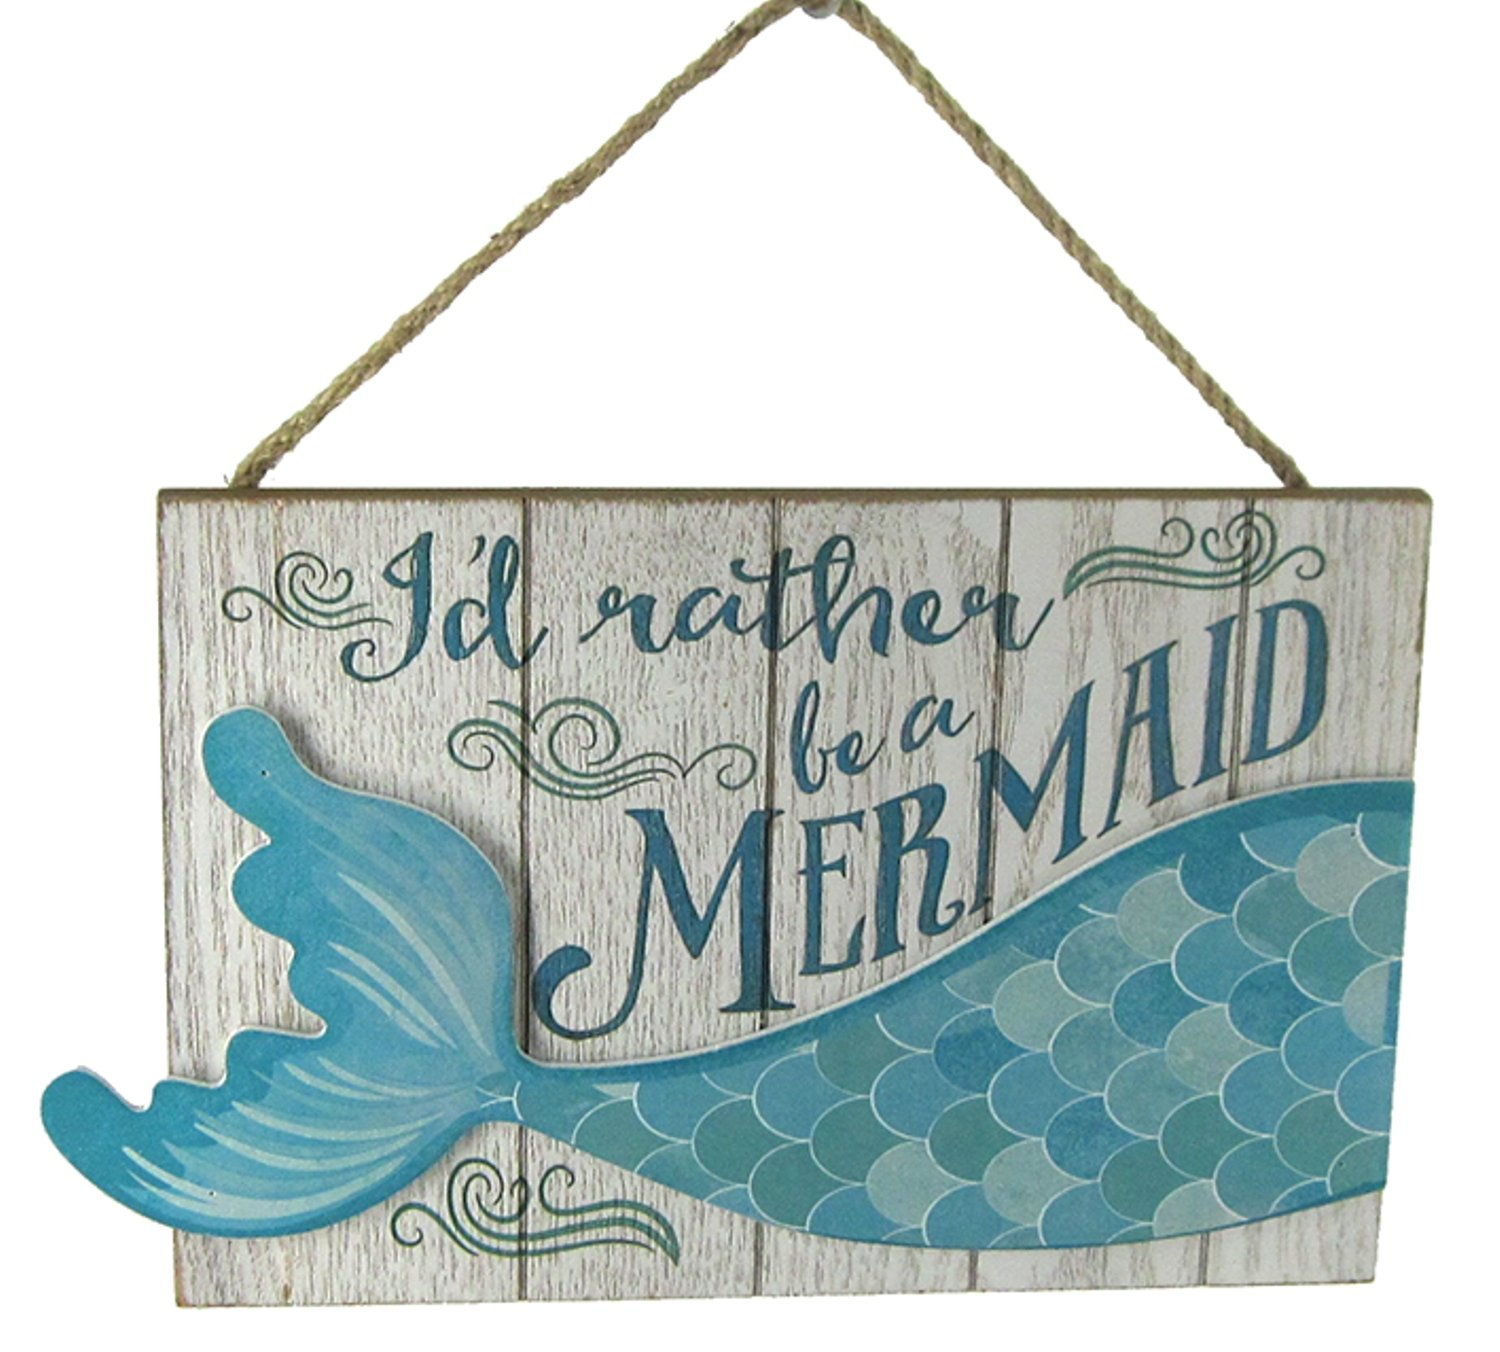 Chesapeake Bay Id Rather Be A Mermaid Dimensional Tail Wall Plaque Blue and White 10.25 Inches